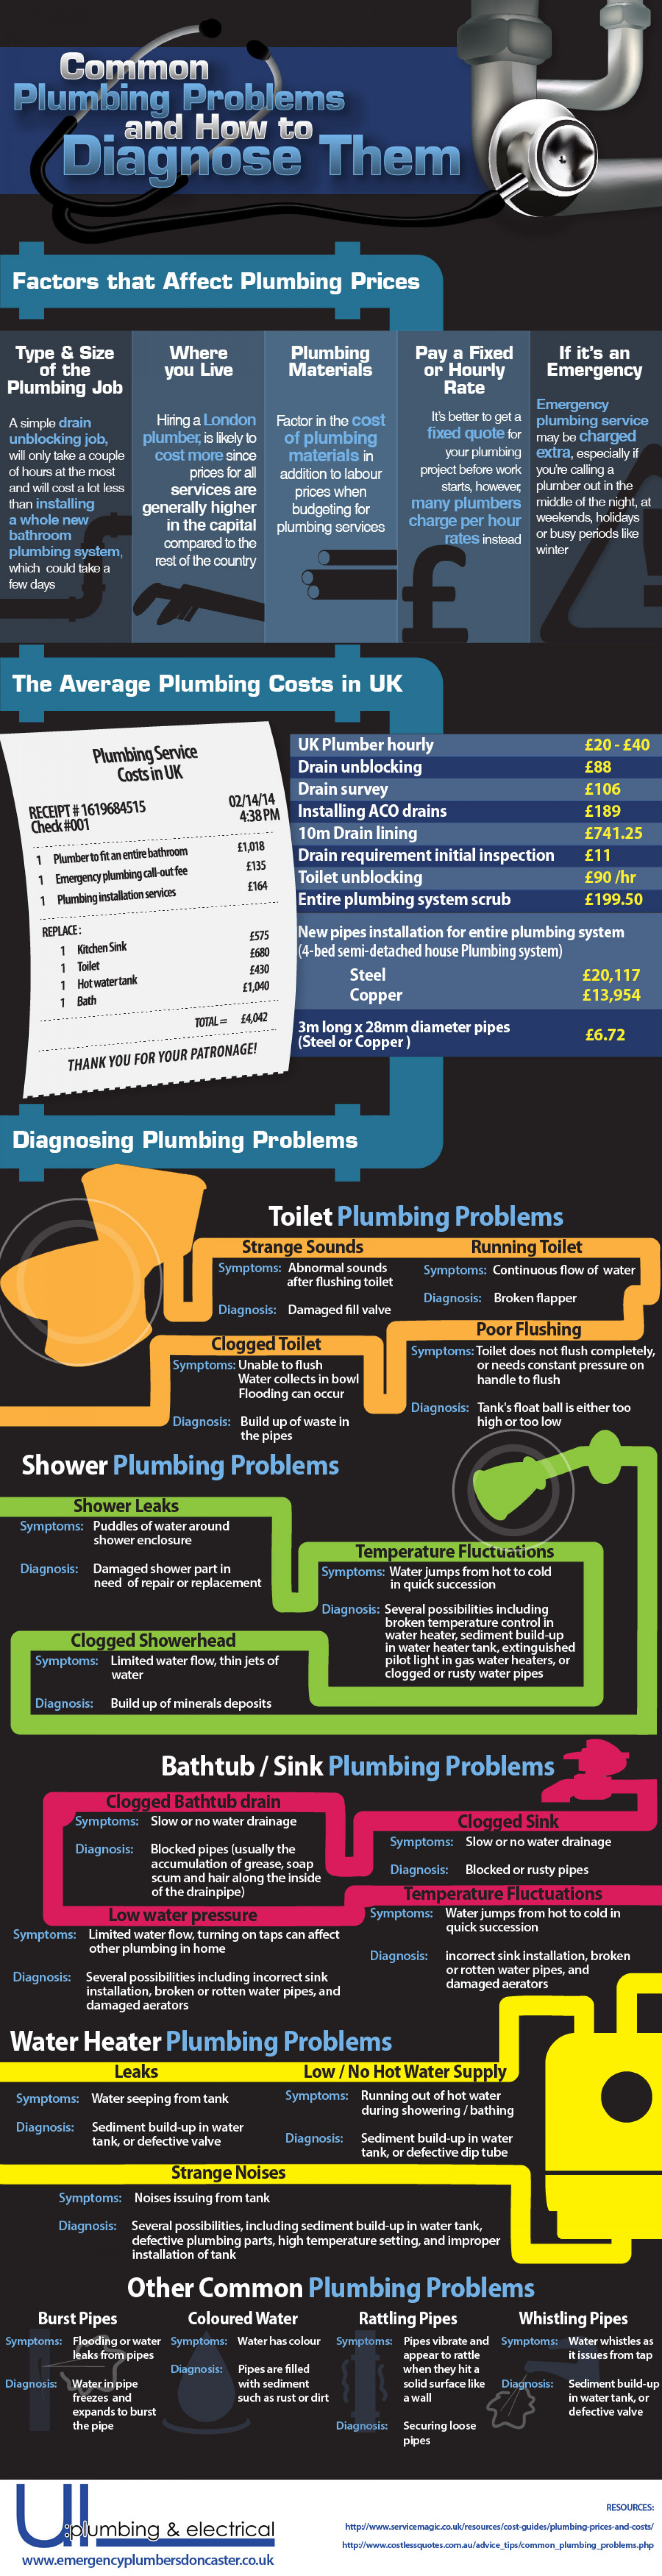 Common Plumbing Problems and How to Diagnose Them Infographic